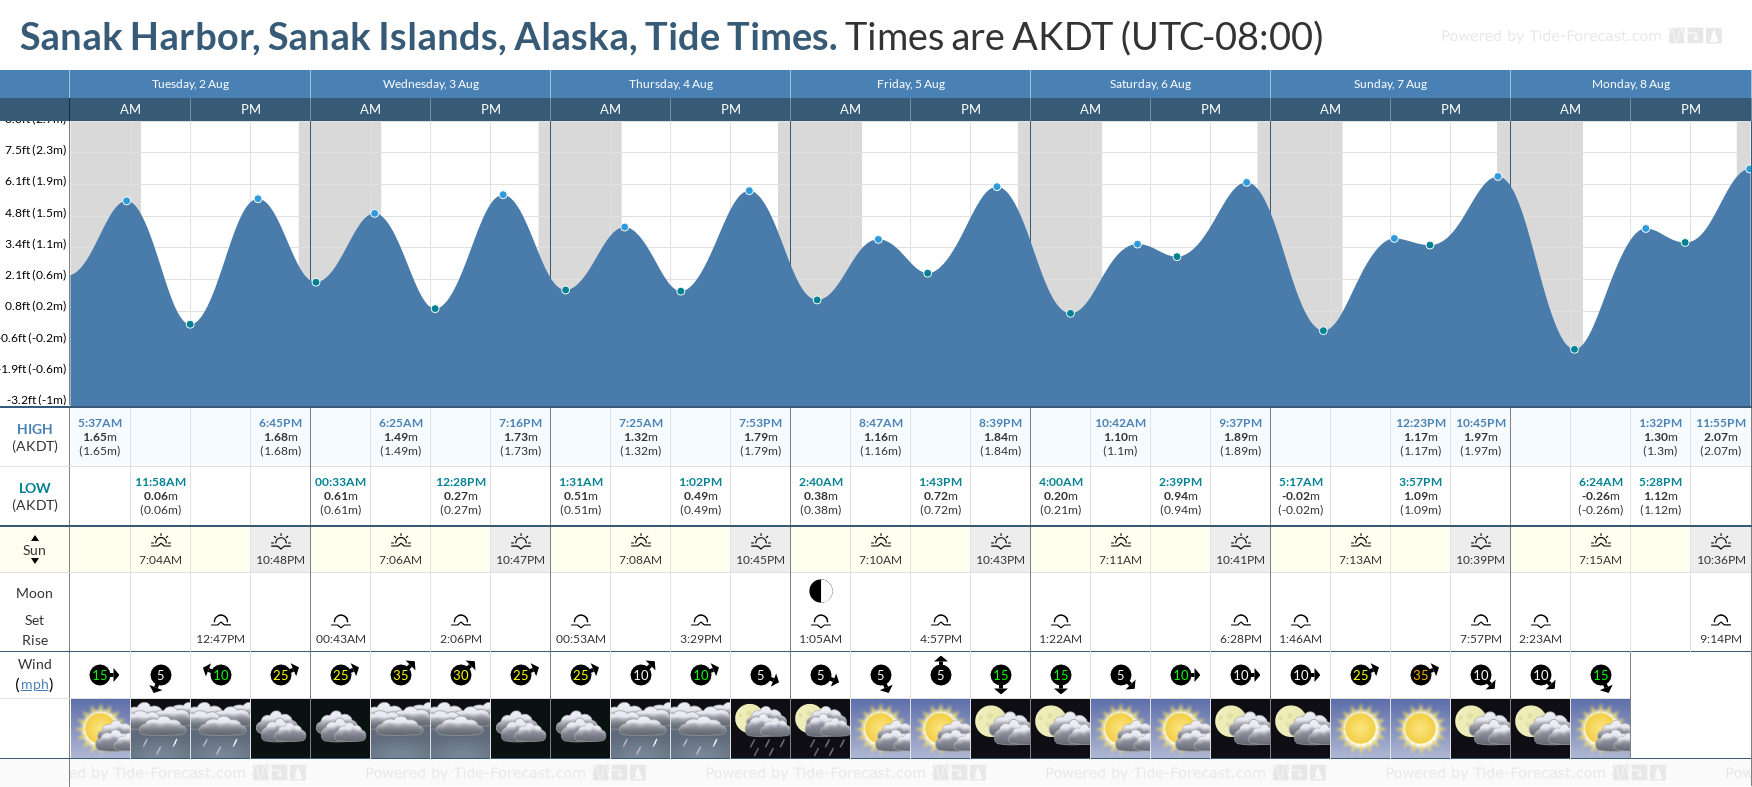 Sanak Harbor, Sanak Islands, Alaska Tide Chart including high and low tide tide times for the next 7 days